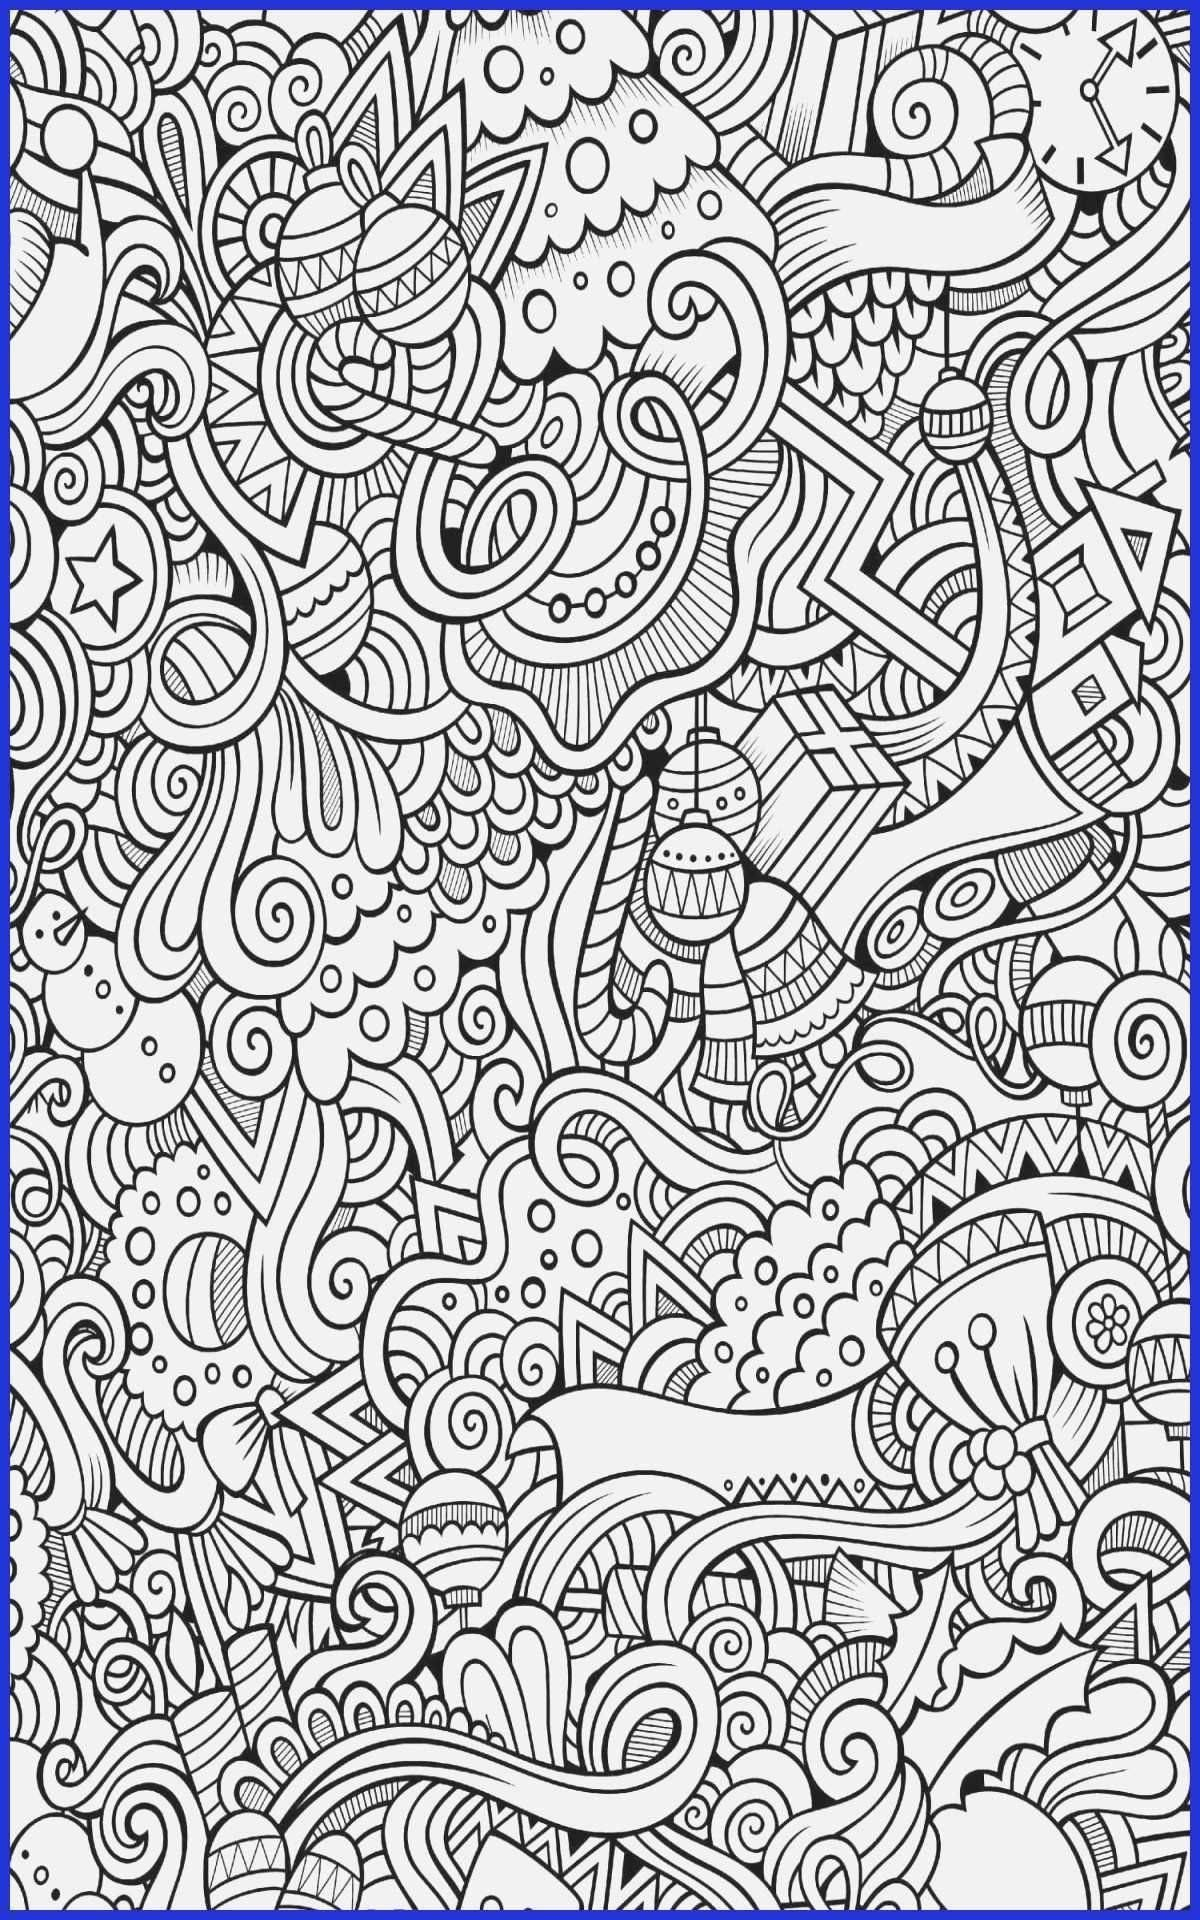 Free Printable Coloring Pages For Adults Advanced Dragons New Free Printable C In 2020 Printable Christmas Coloring Pages Heart Coloring Pages Christmas Coloring Pages